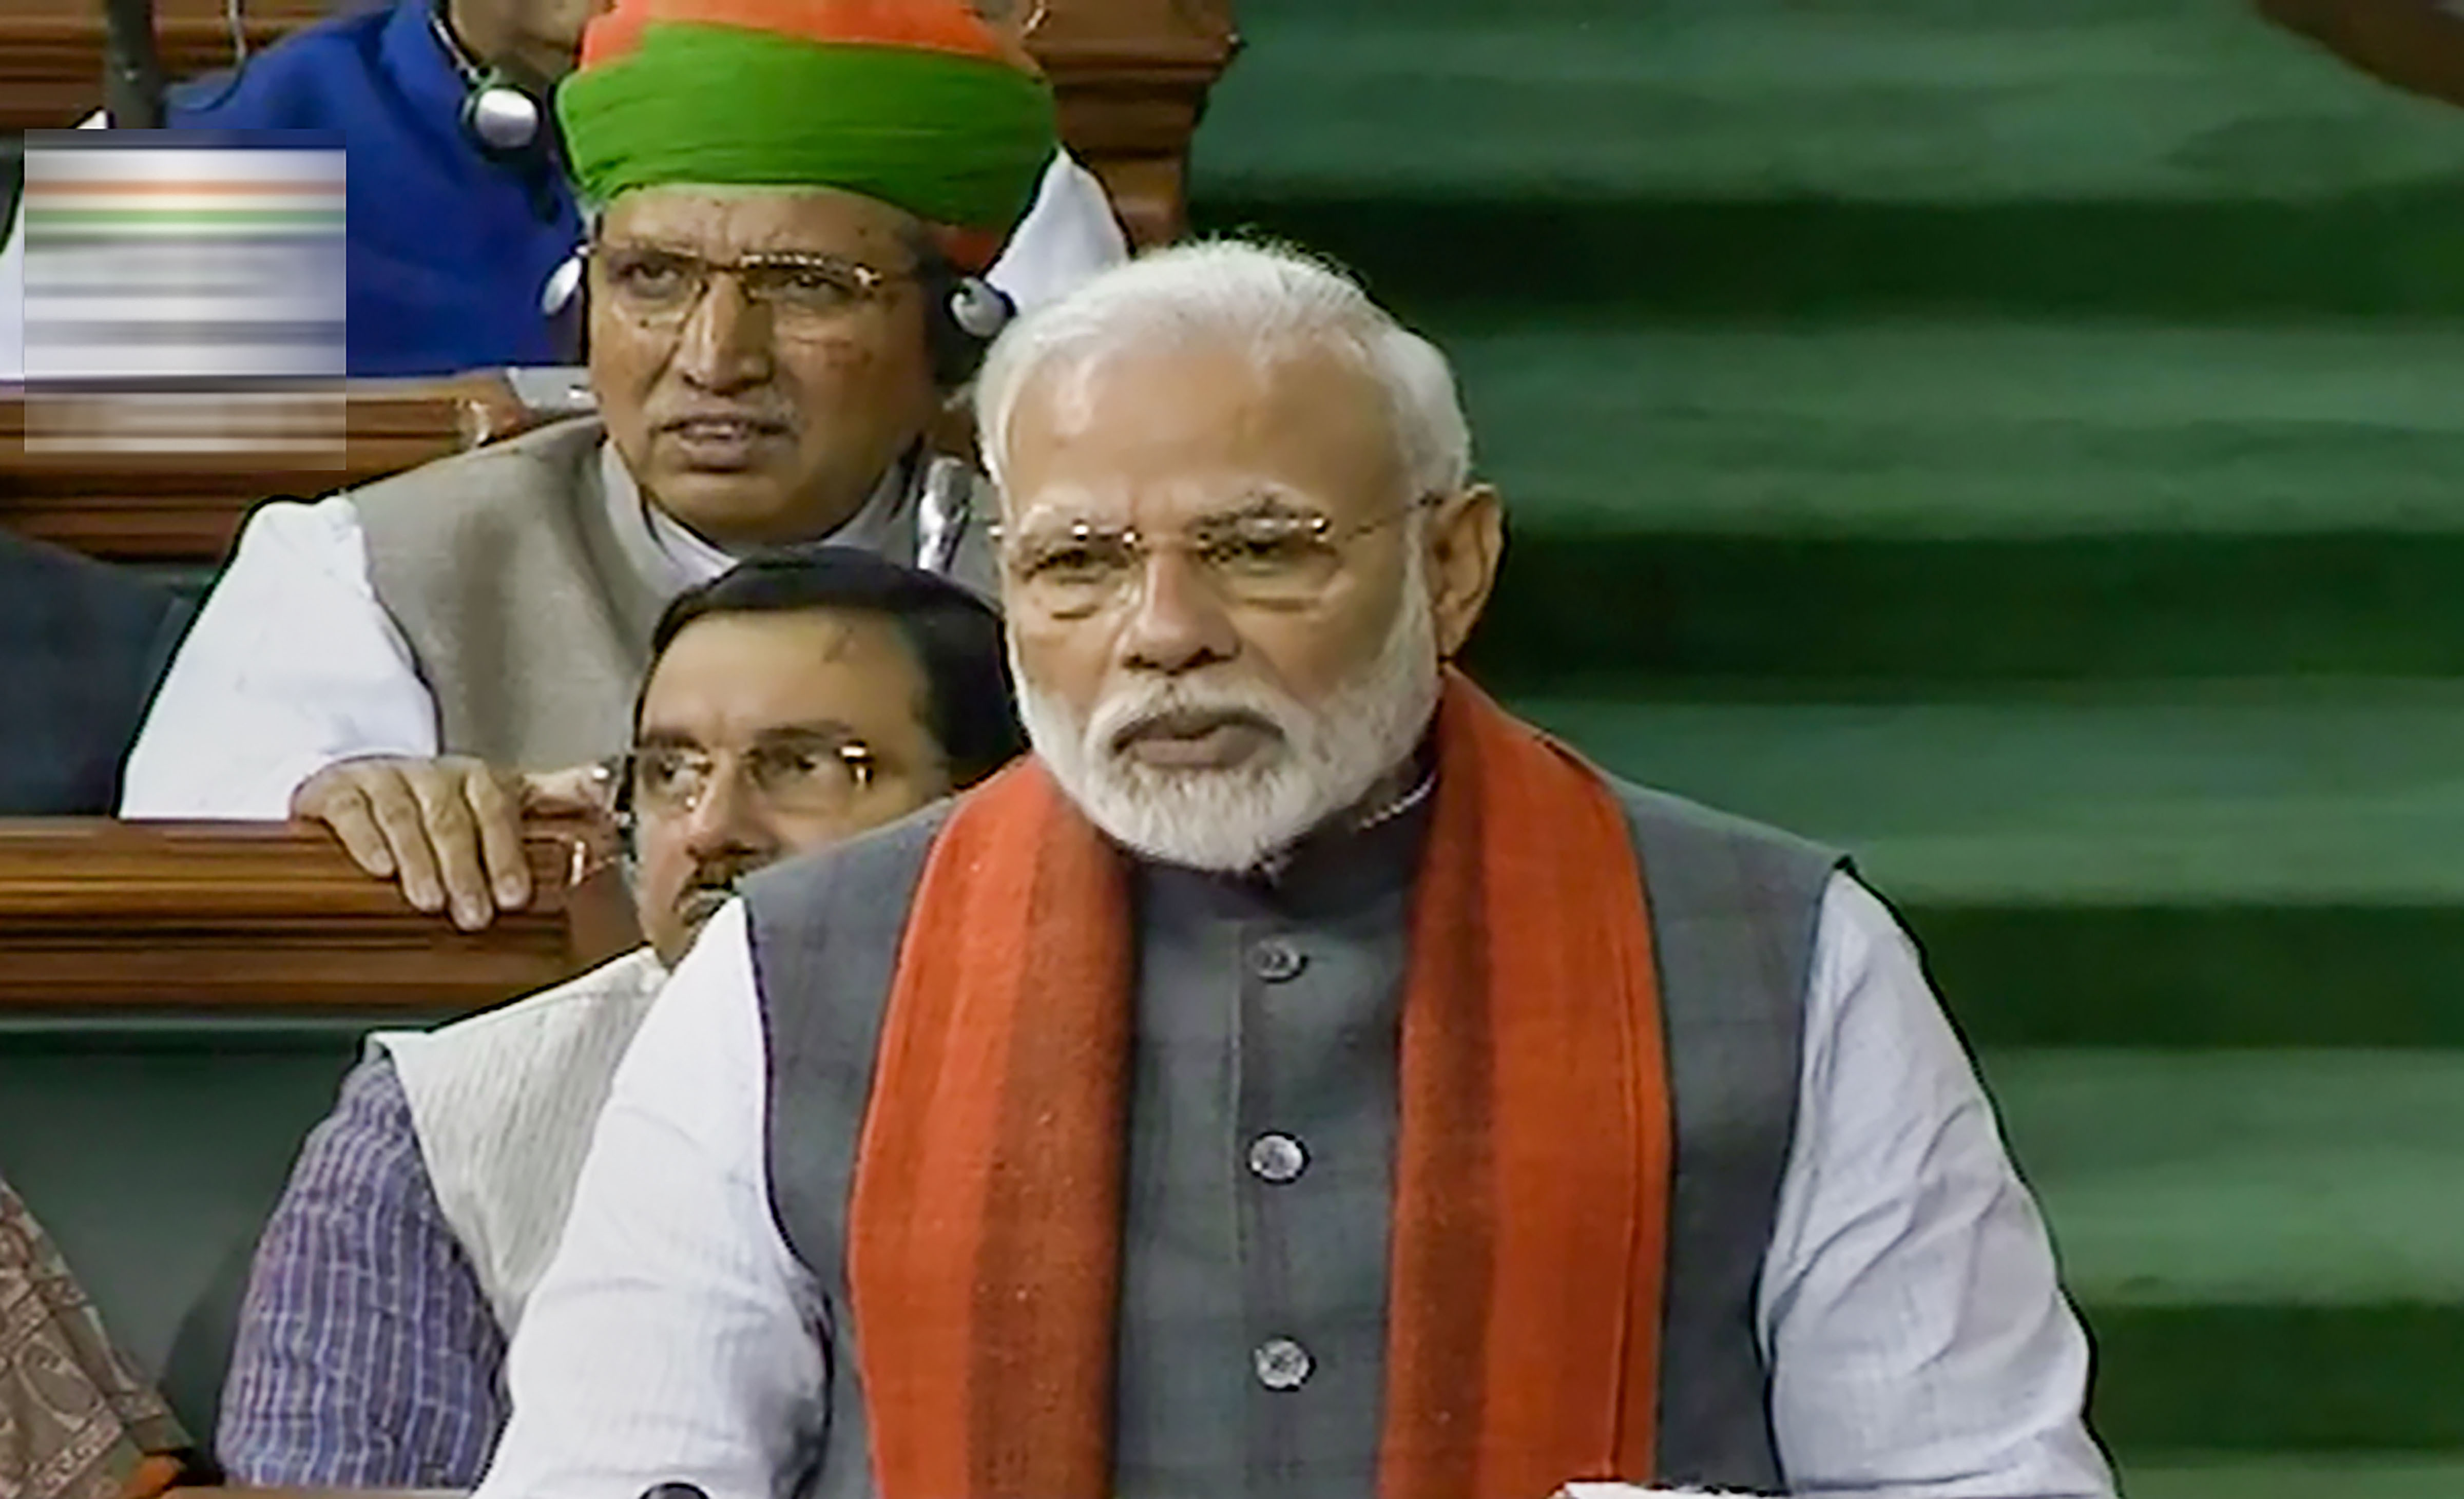 Prime Minister Narendra Modi announces the formation of a trust for the construction of a Ram Temple in Ayodhya in the Lok Sabha, during the ongoing Budget Session of Parliament in New Delhi, Wednesday, February 5, 2020